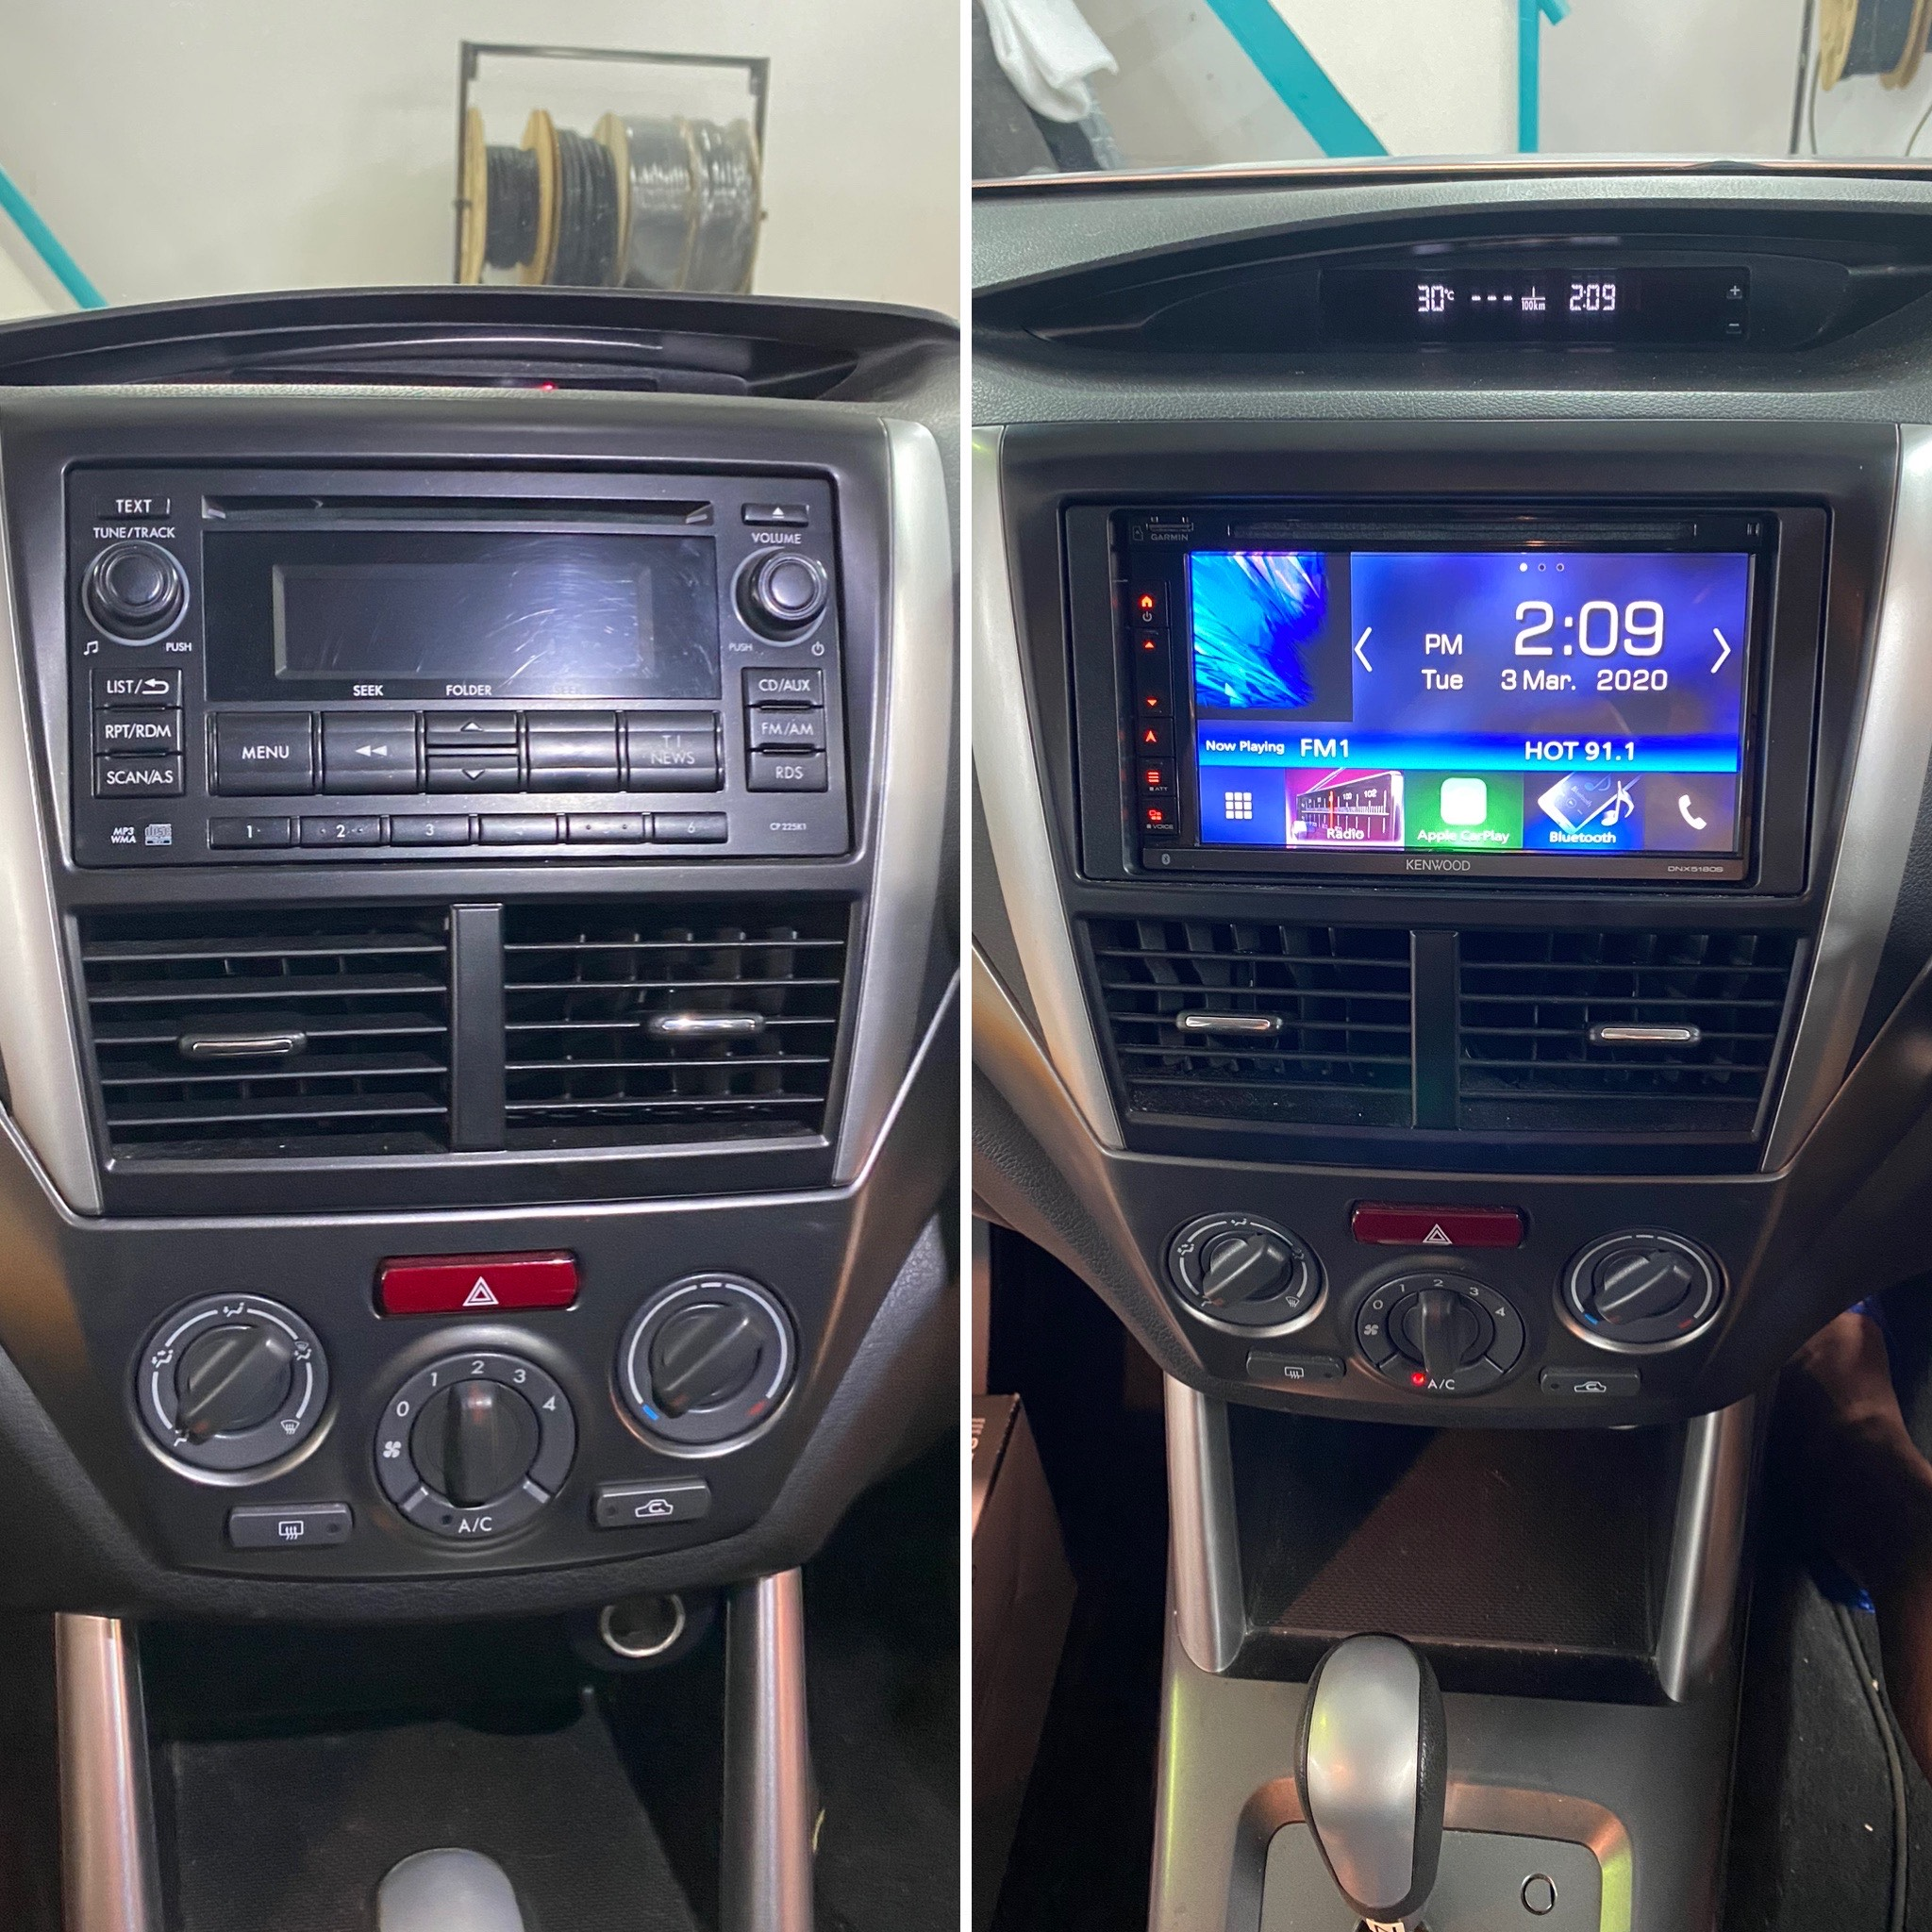 Subaru Forester 2008 – 2012 stereo upgrade with Apple Car Play and Android Auto